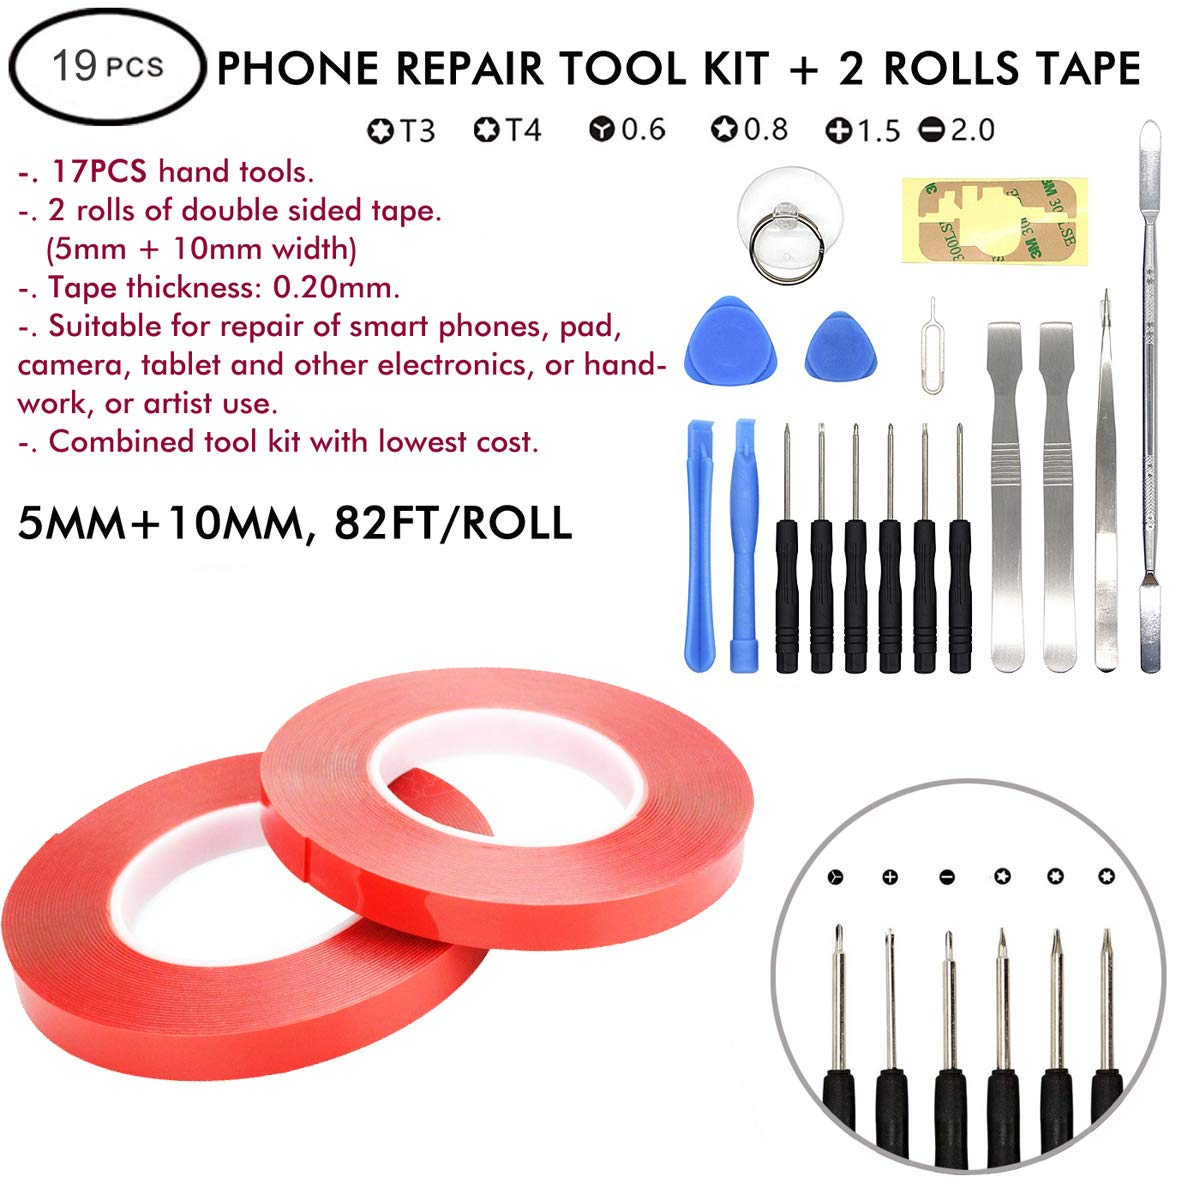 LLP Double Sided Tape (2 Rolls PET) 5mm & 10mm x 164 Ft with 17PCS Repair Tool Kit for Phones, Laptops, iPads, RC, Toys & Electronics